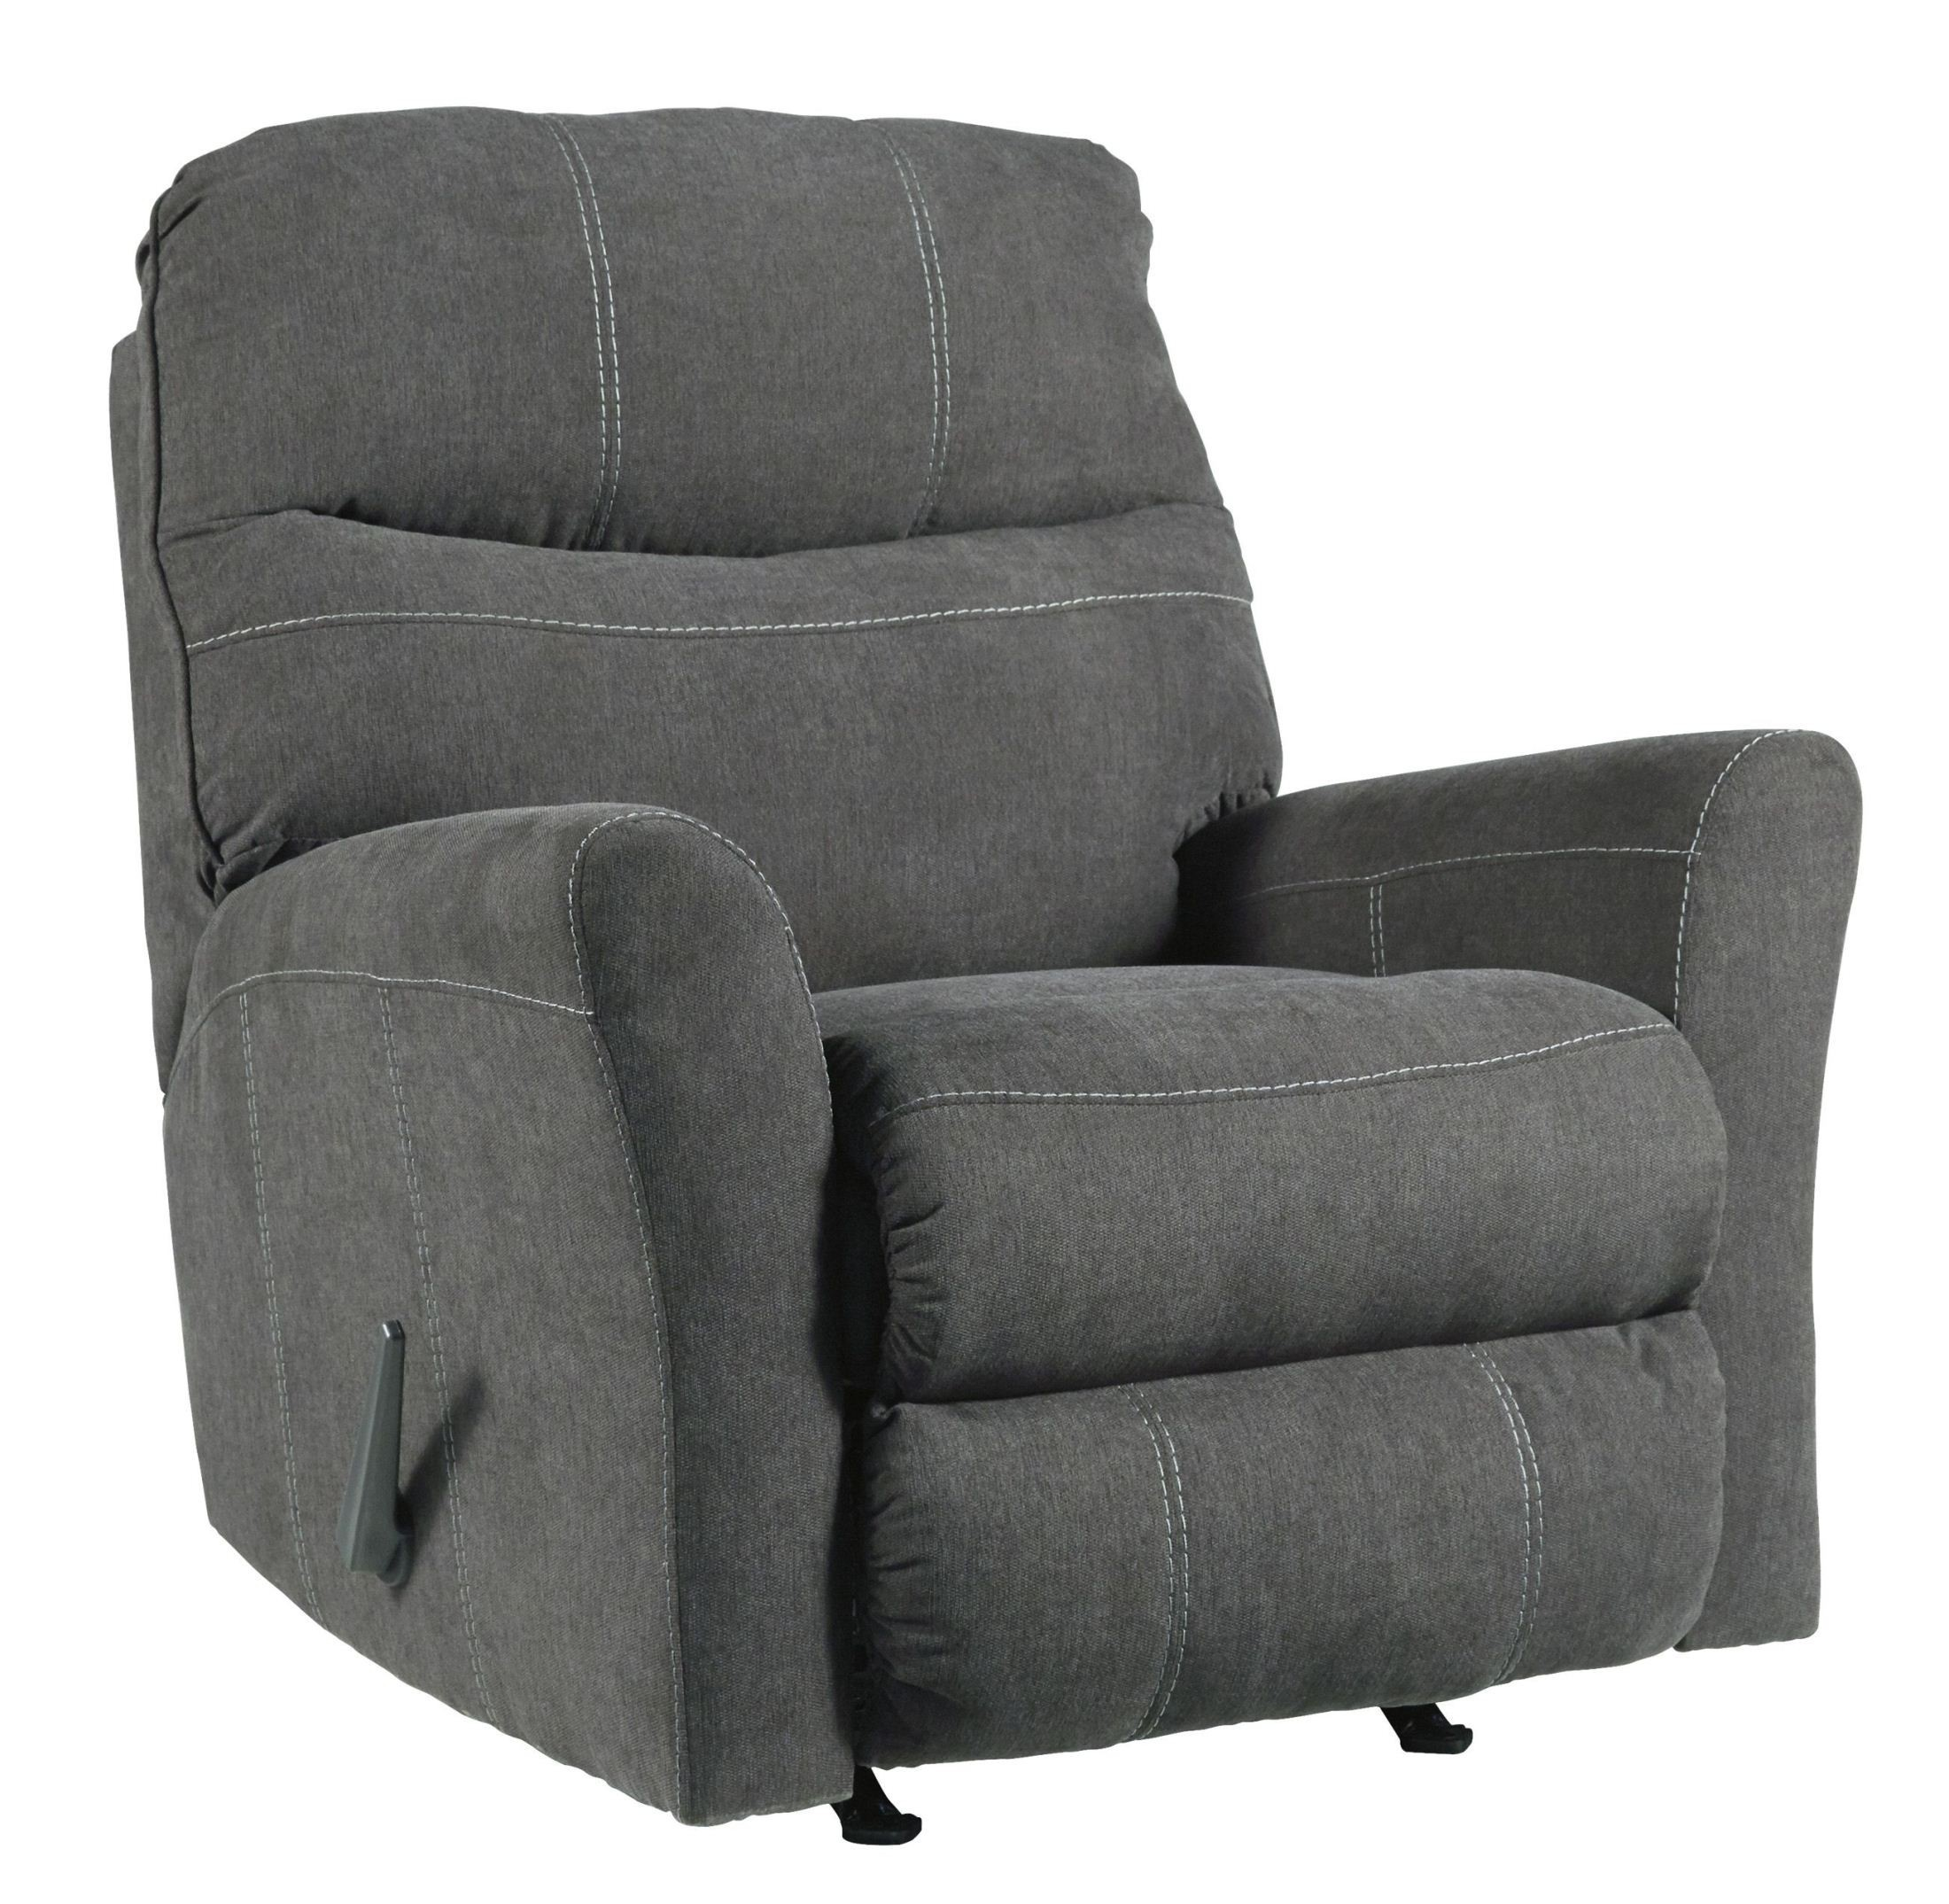 Maier Charcoal Laf Sectional From Ashley 45200 16 67